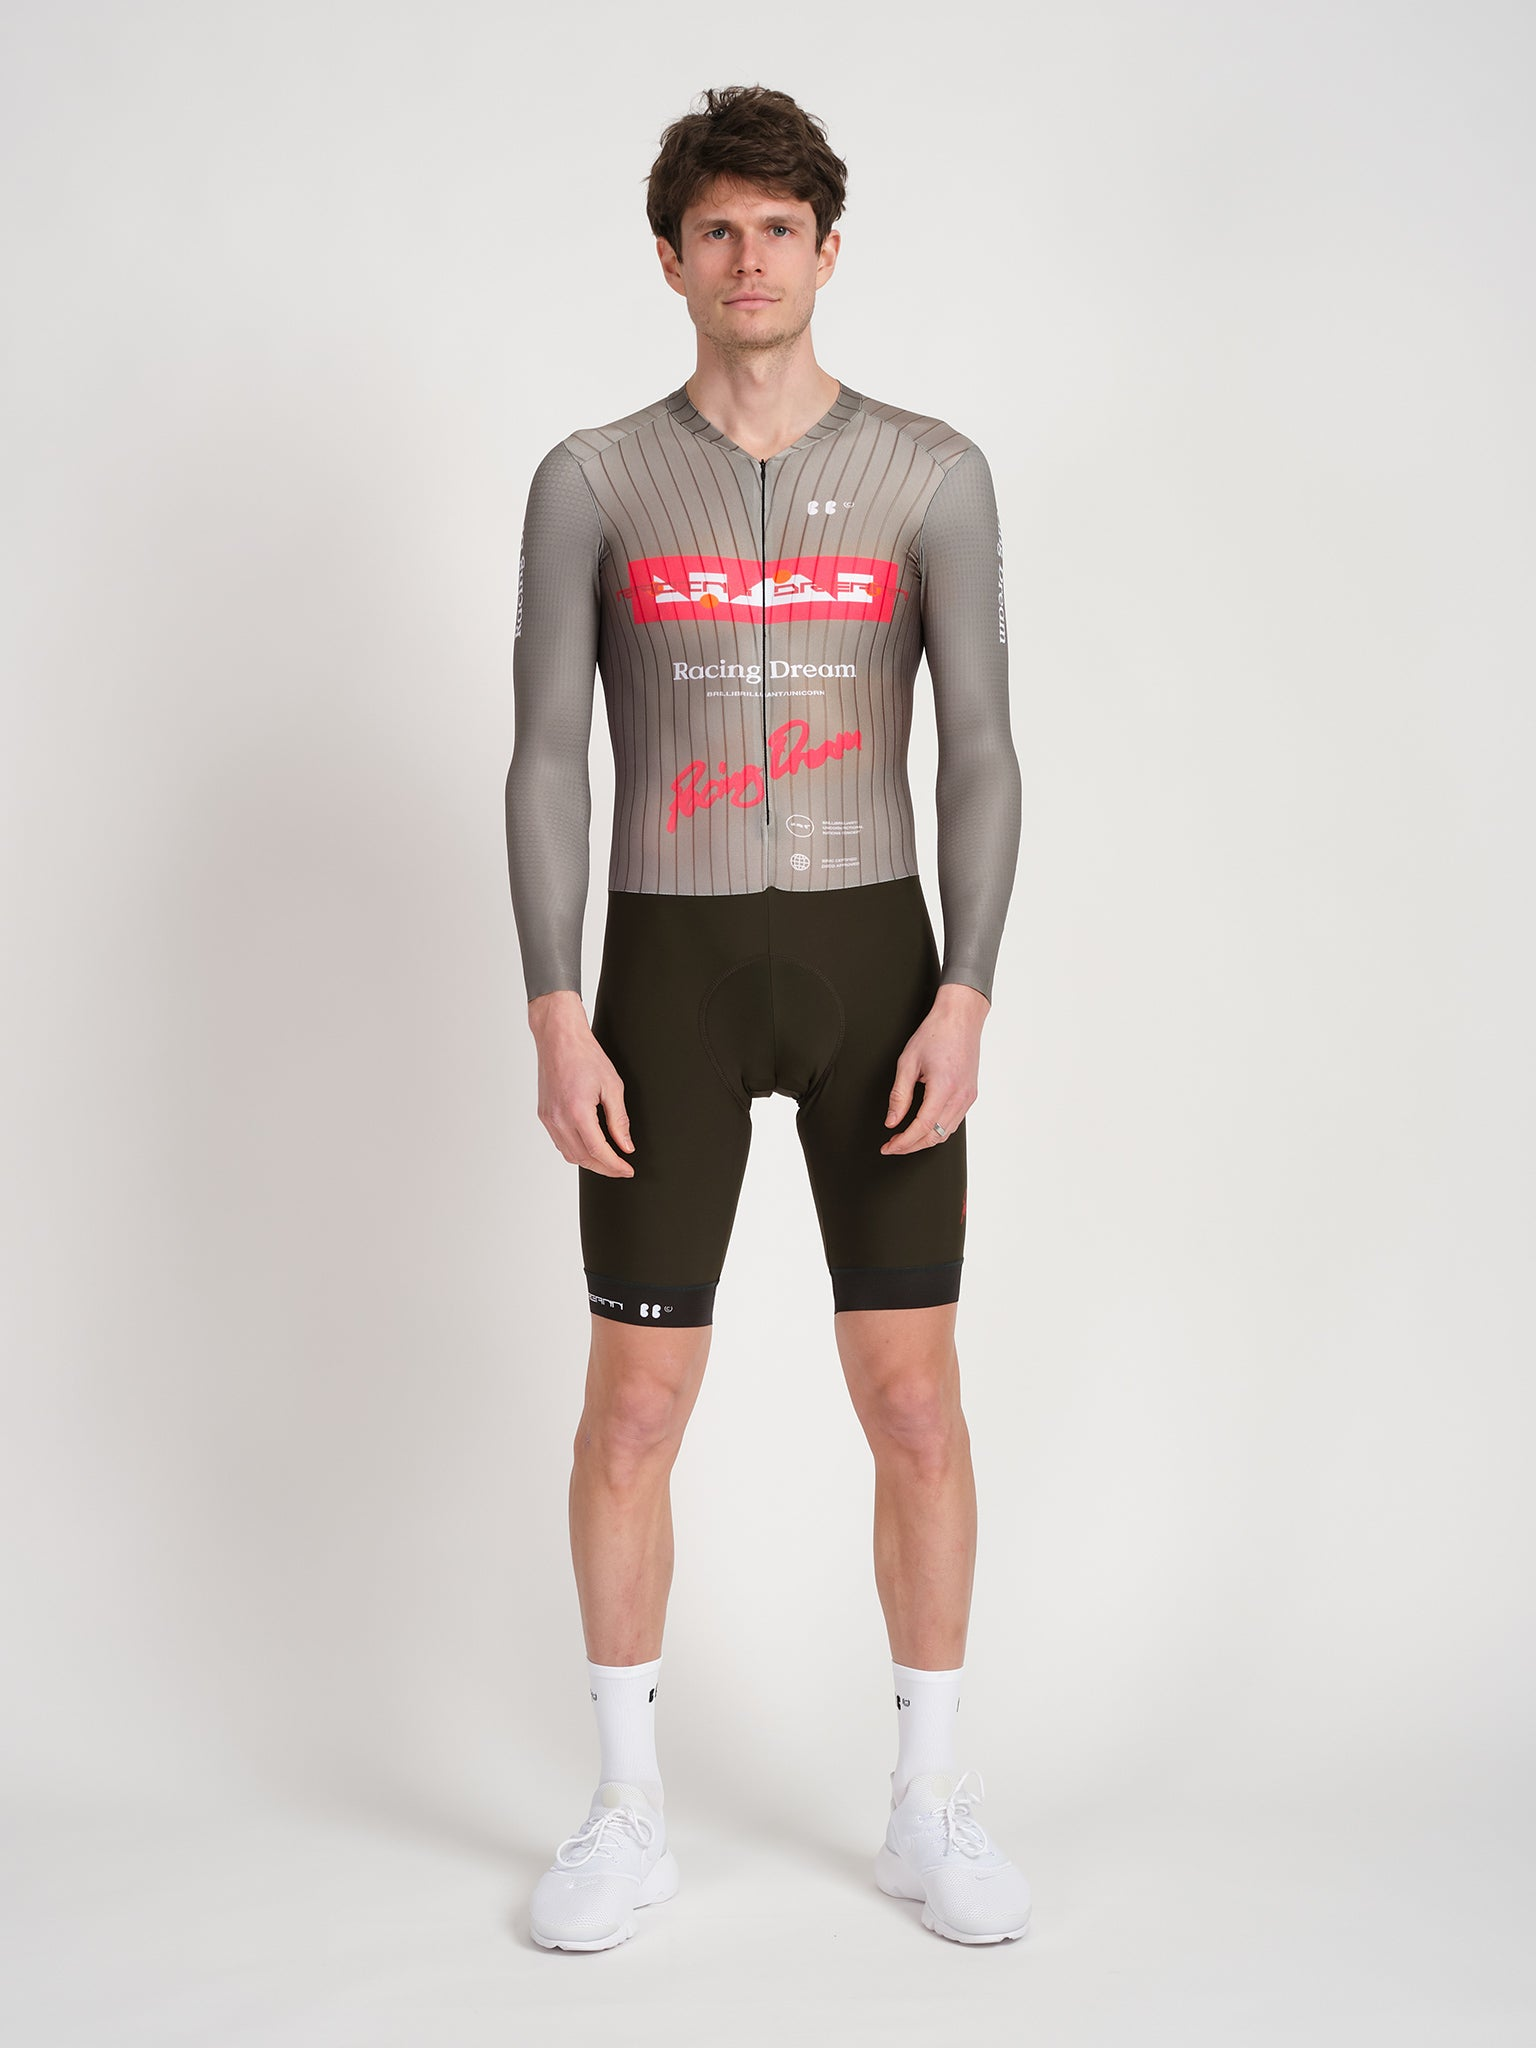 Male model wearing RD Skinsuit in Olive, featuring a long sleeve upper with a textured surface.